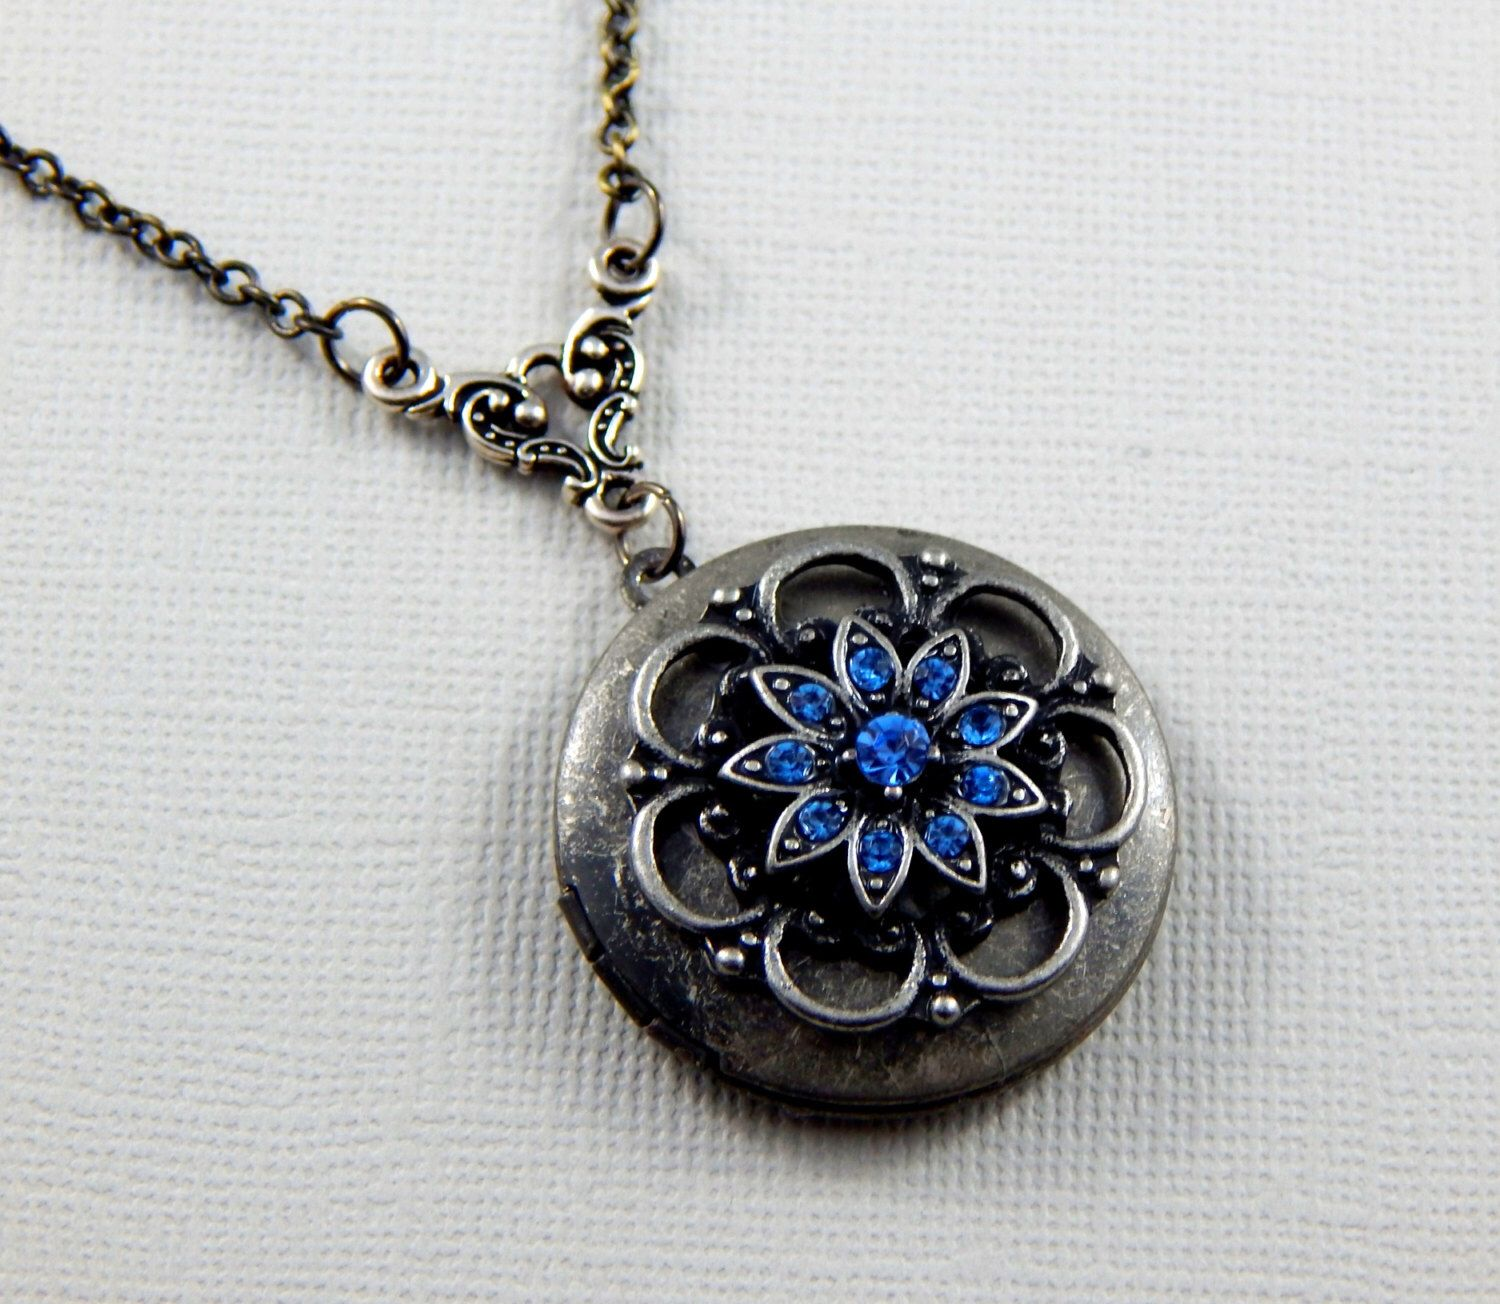 Sapphire Lace Flower Locket Antique Silver Locket Round Silver Birthstone Locket Opening Locket by Kikiburrabeads on Etsy https://www.etsy.com/listing/240100390/sapphire-lace-flower-locket-antique